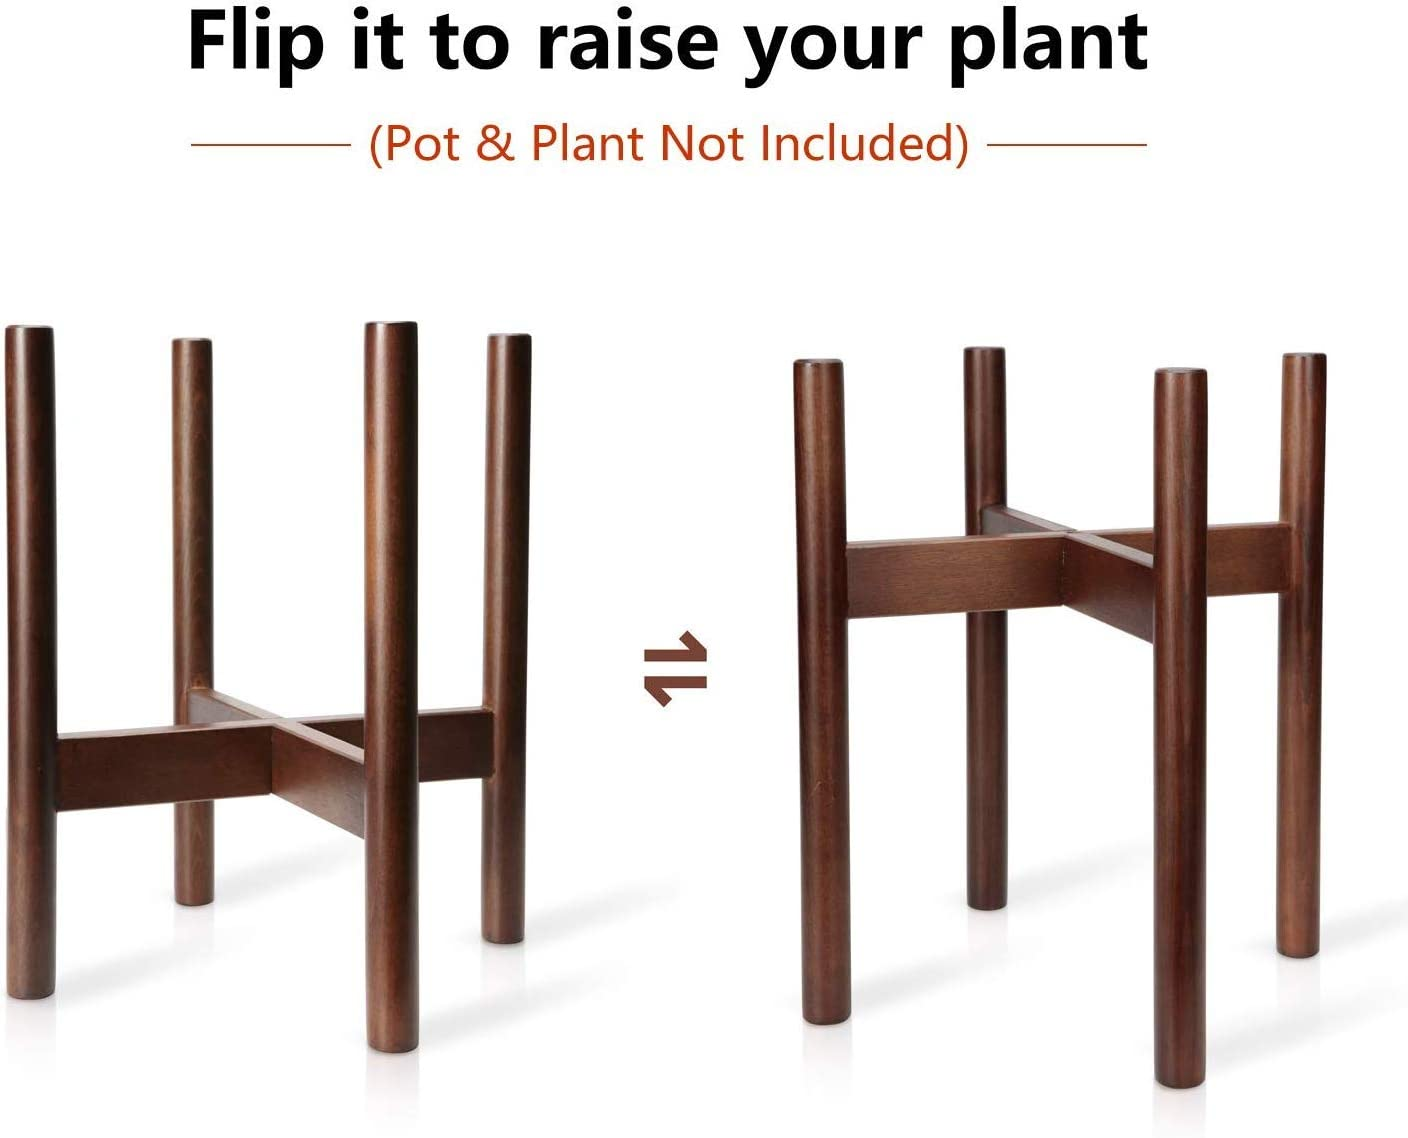 Mkono Plant Stand Mid Century Wood Flower Pot Holder (Plant Pot NOT Included) Potted Stand Indoor Display Rack Rustic Decor, Up to 10 Inch Planter, Dark Brown : Garden & Outdoor